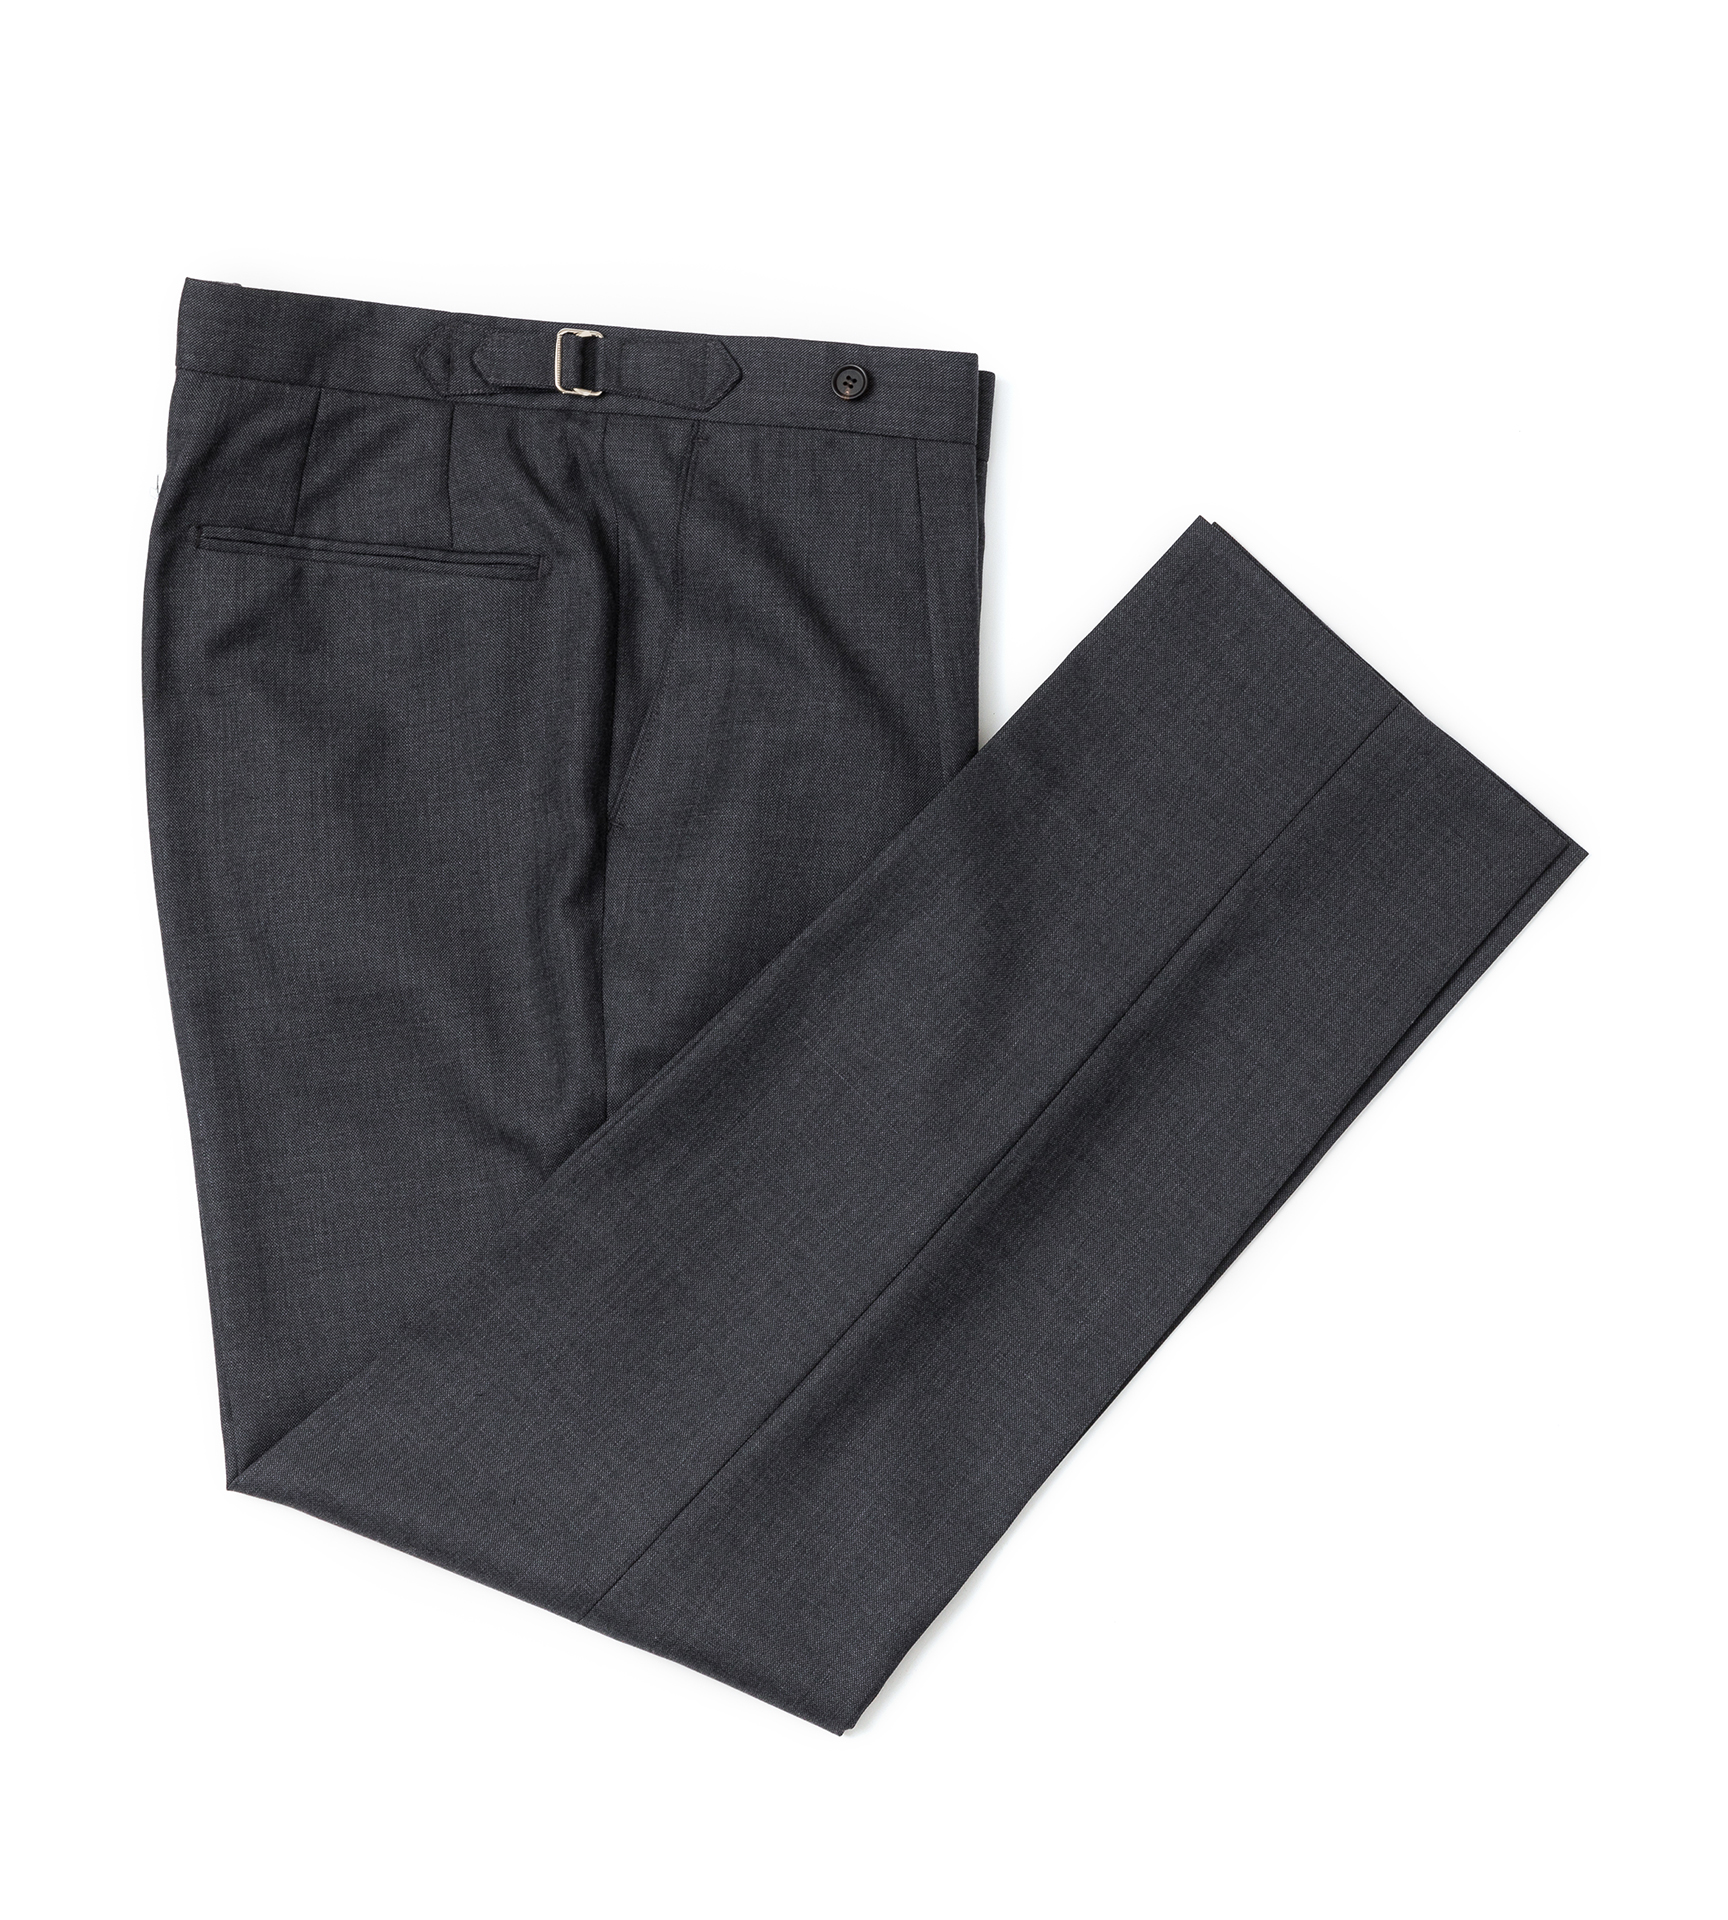 Barrington Wool pants - Charcoal gray (285G)